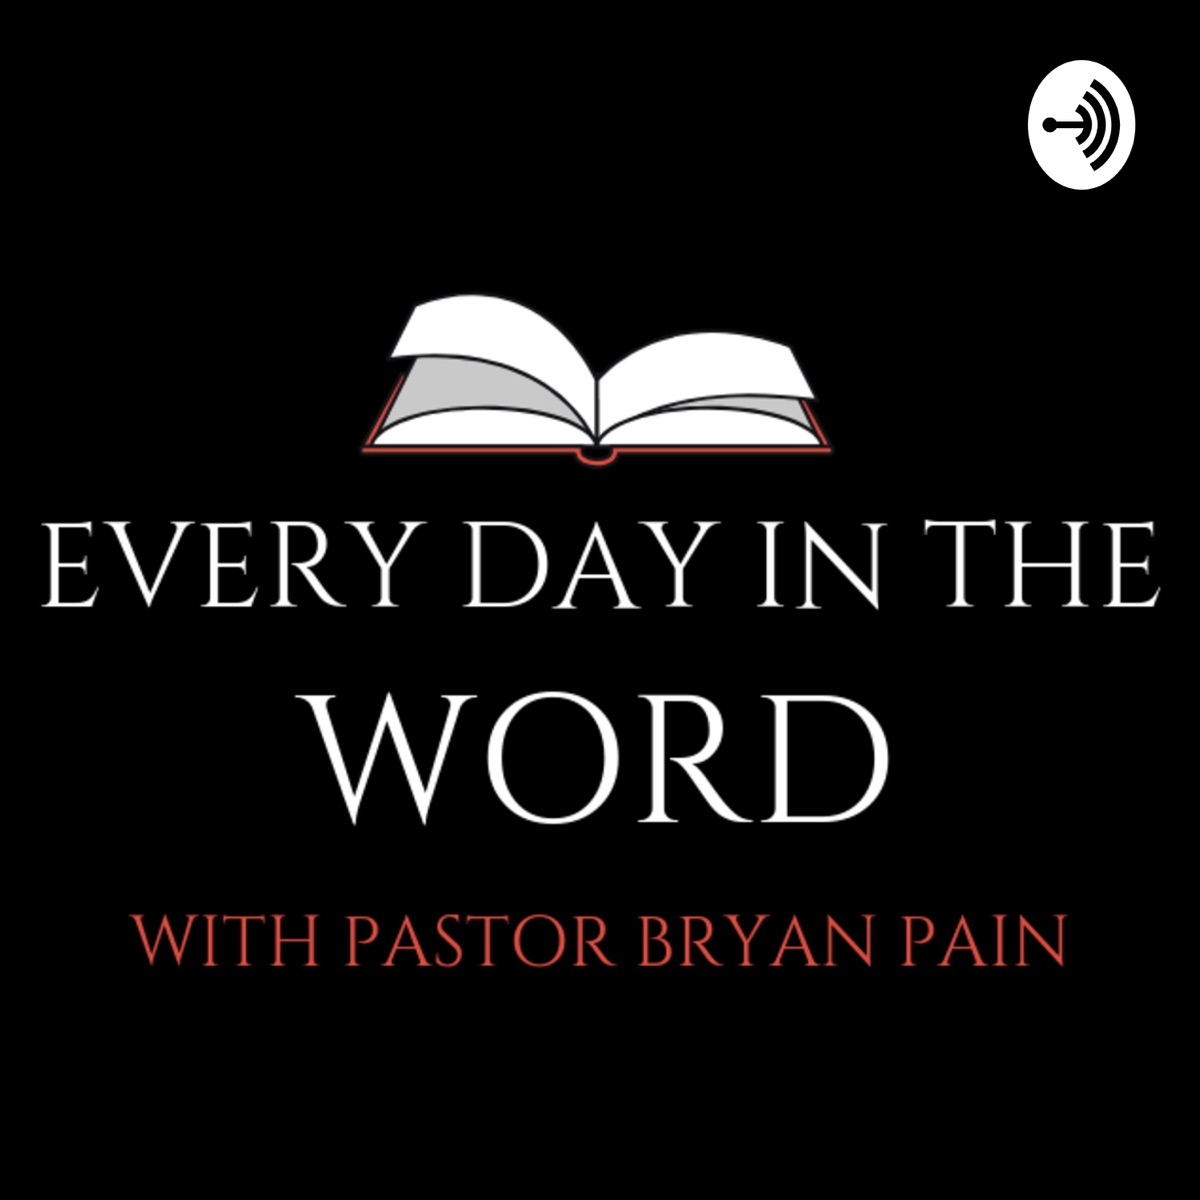 Every Day in the Word